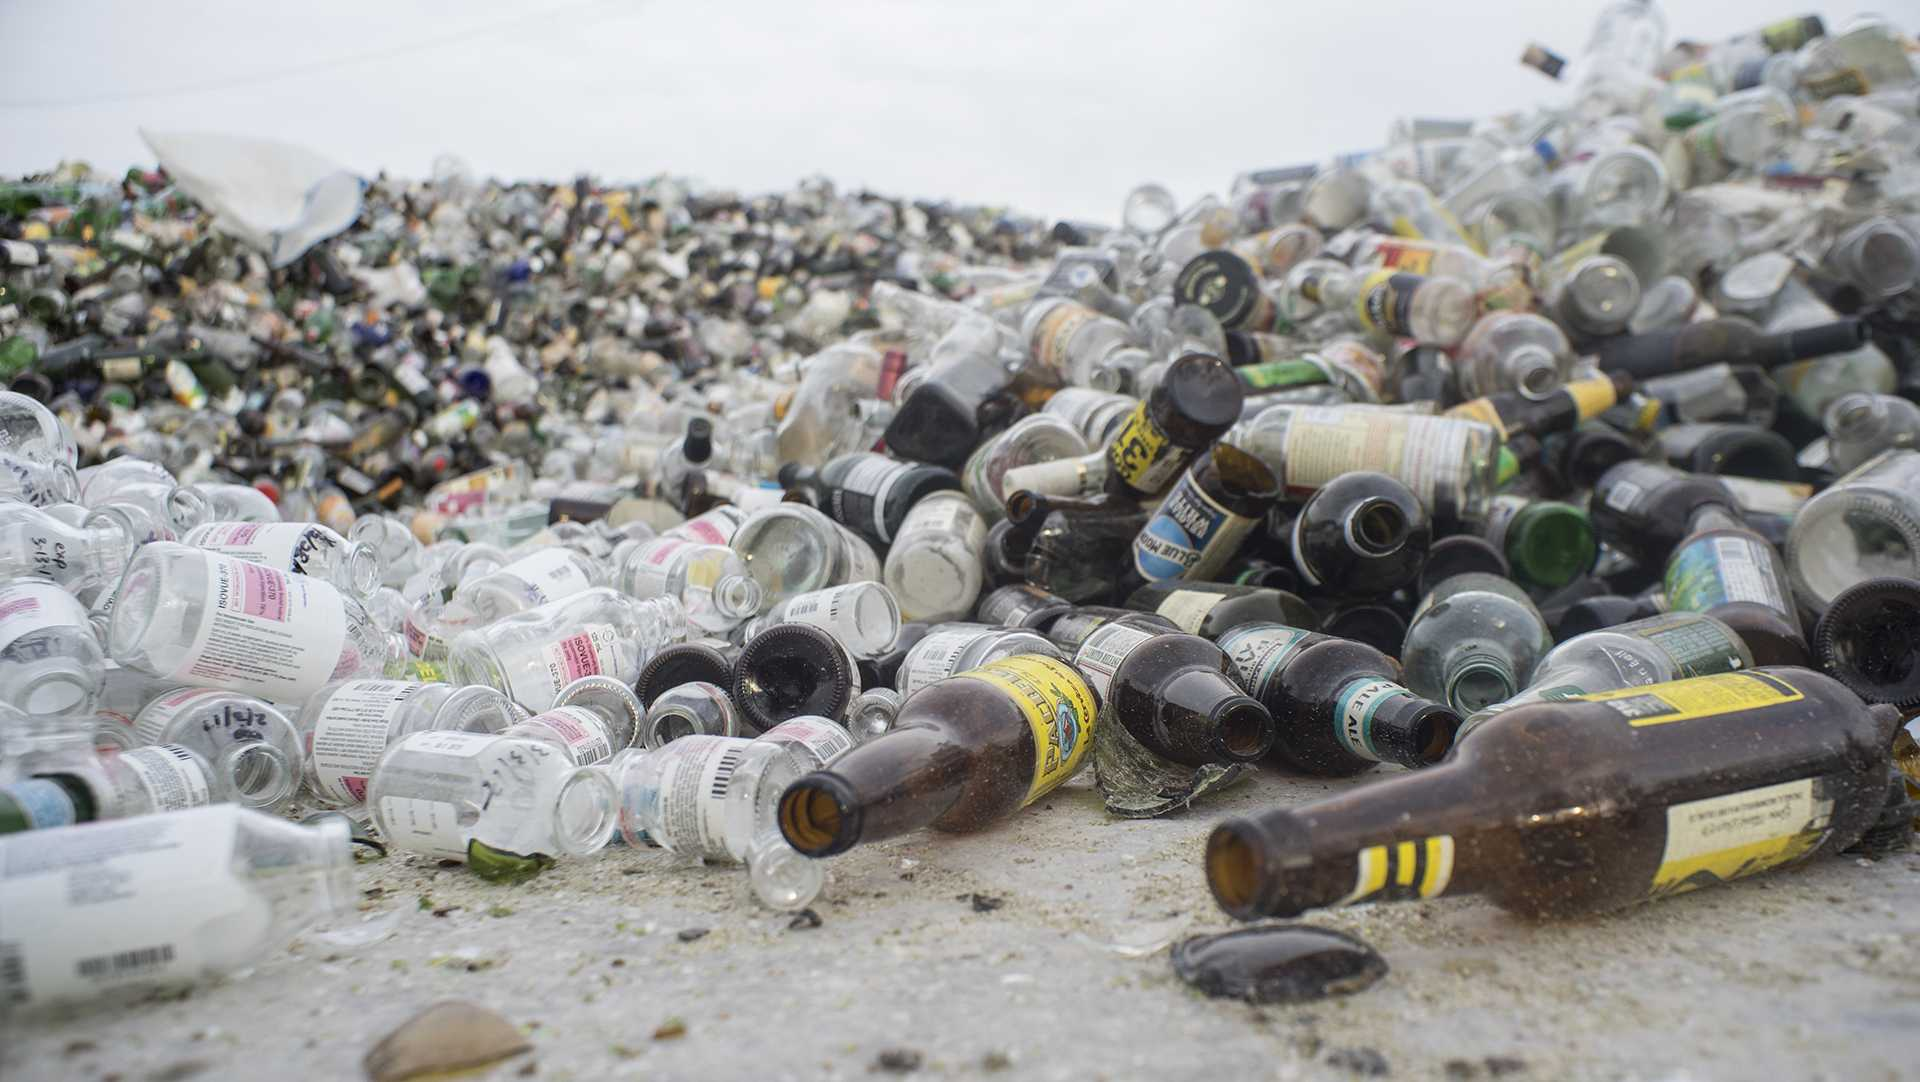 FILE - Thousands of cans and bottles are seen at City Carton Recycling on Thursday, March 23, 2017. HF 575, which has been coined the